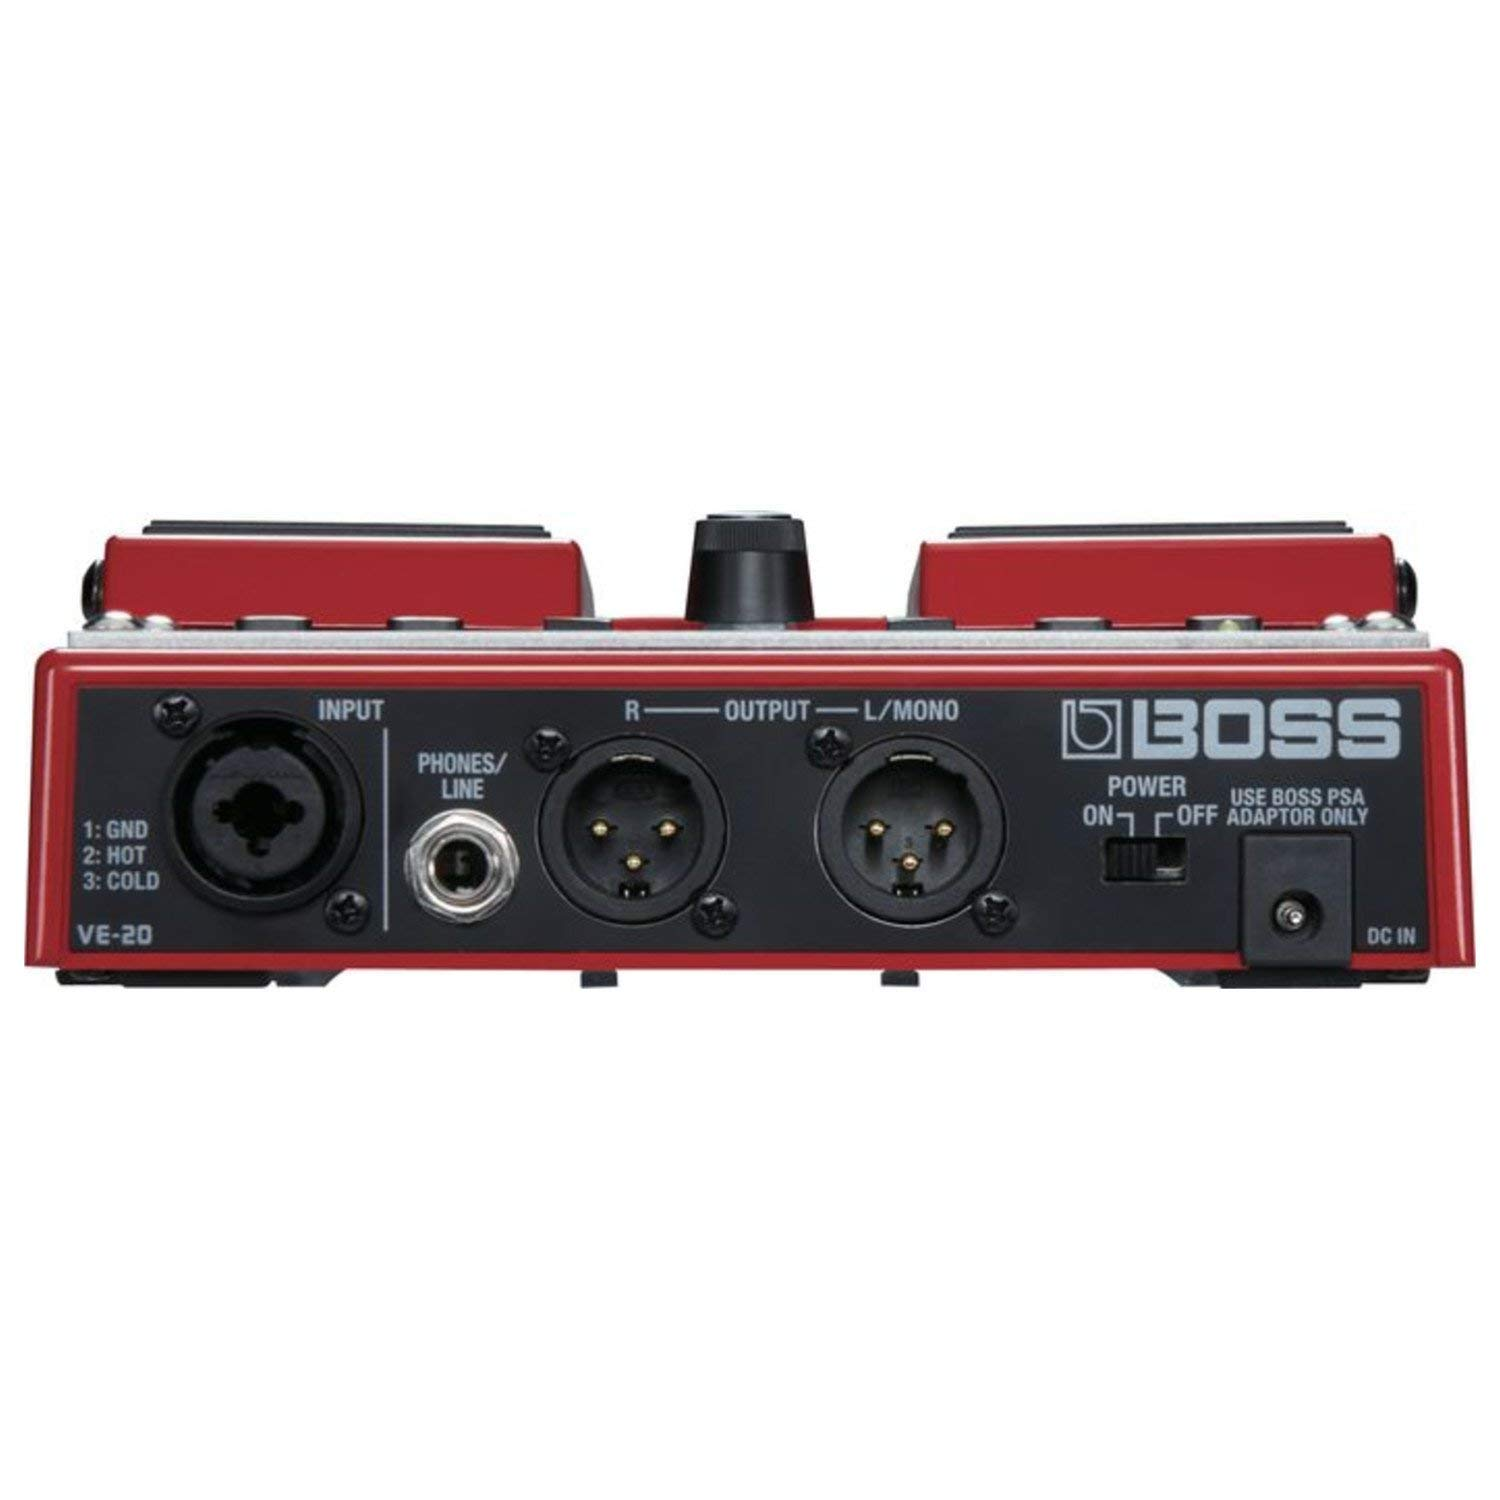 Boss VE-20 Vocal Performer Vocal Processor Pedal w/ Power Supply by BOSS (Image #3)